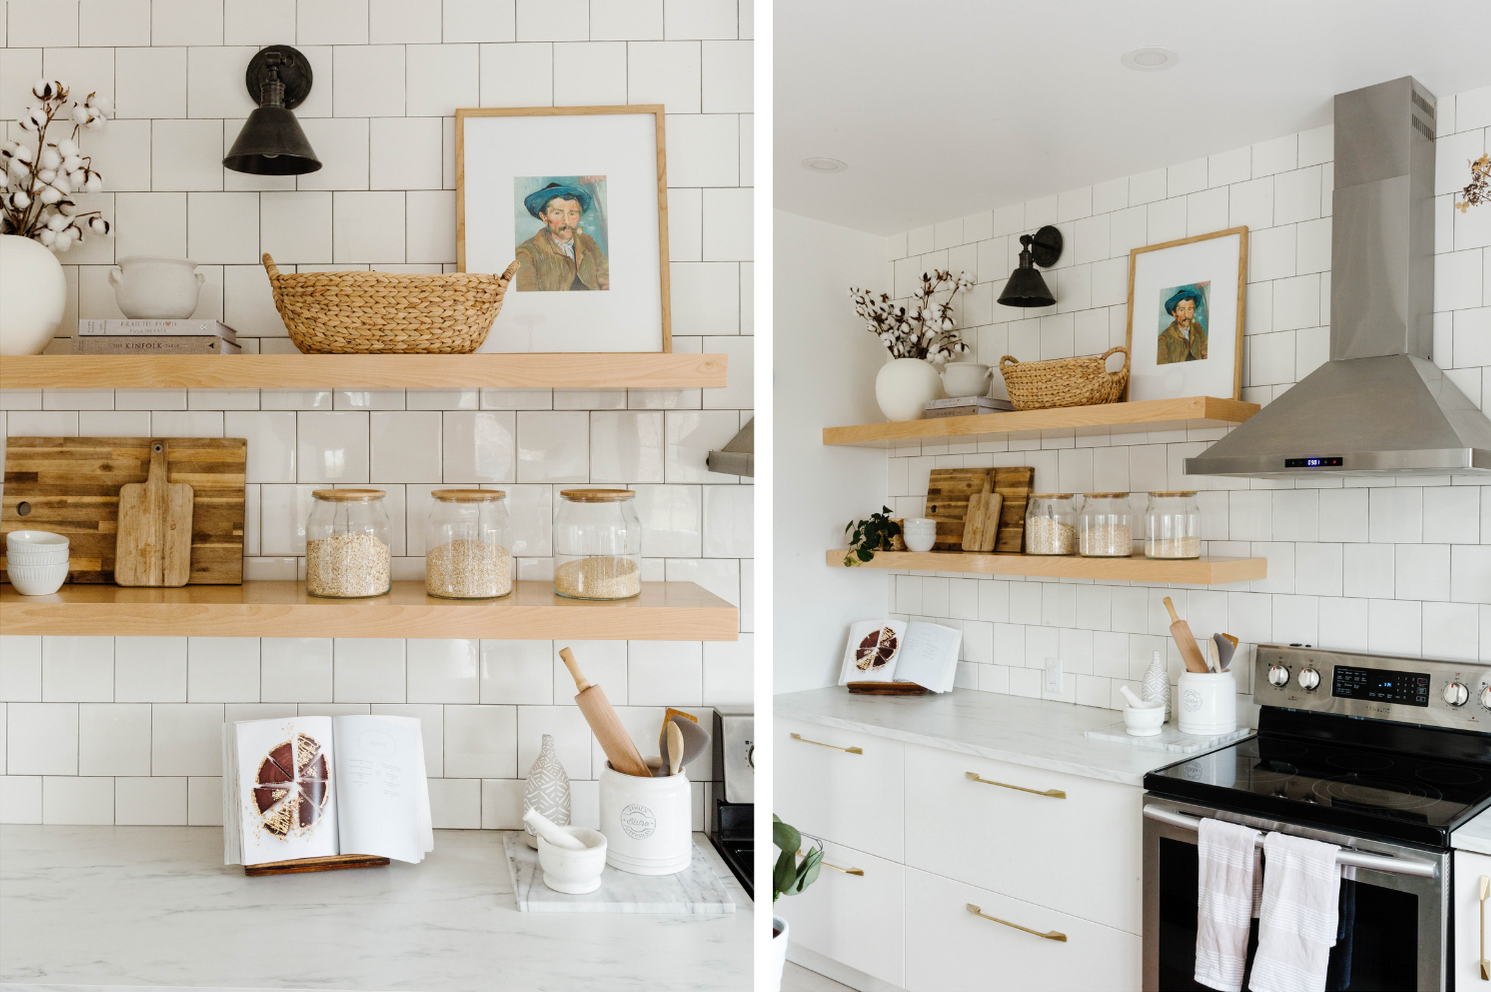 Two photos of Brit's kitchen, with minimally decorated shelves and nearly bare counter tops